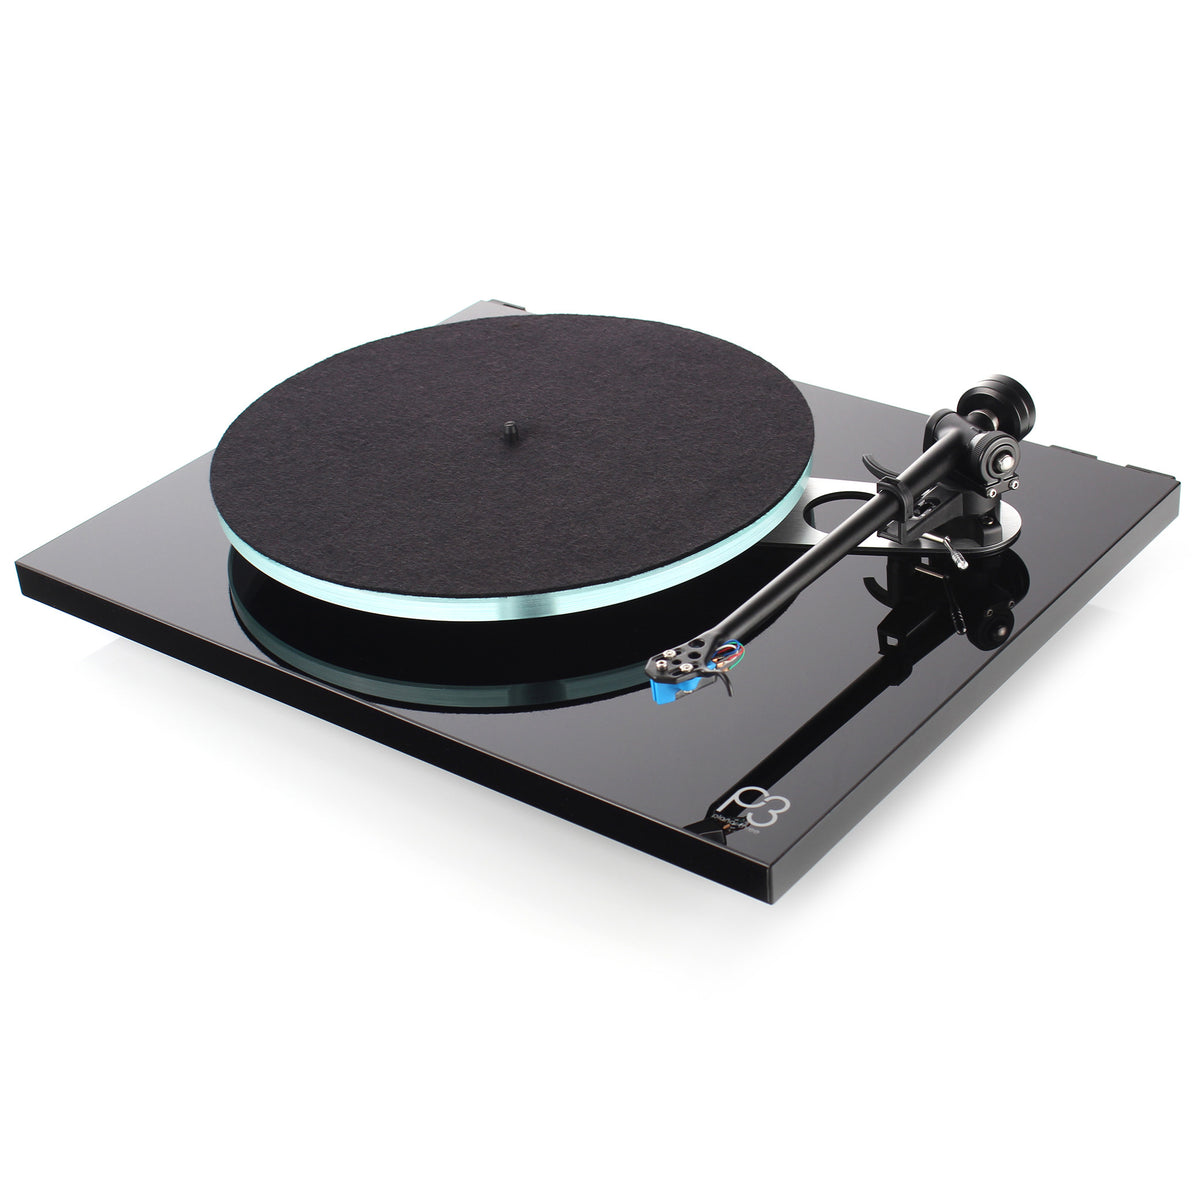 Rega: Planar 3 Turntable w/ Elys 2 - Black